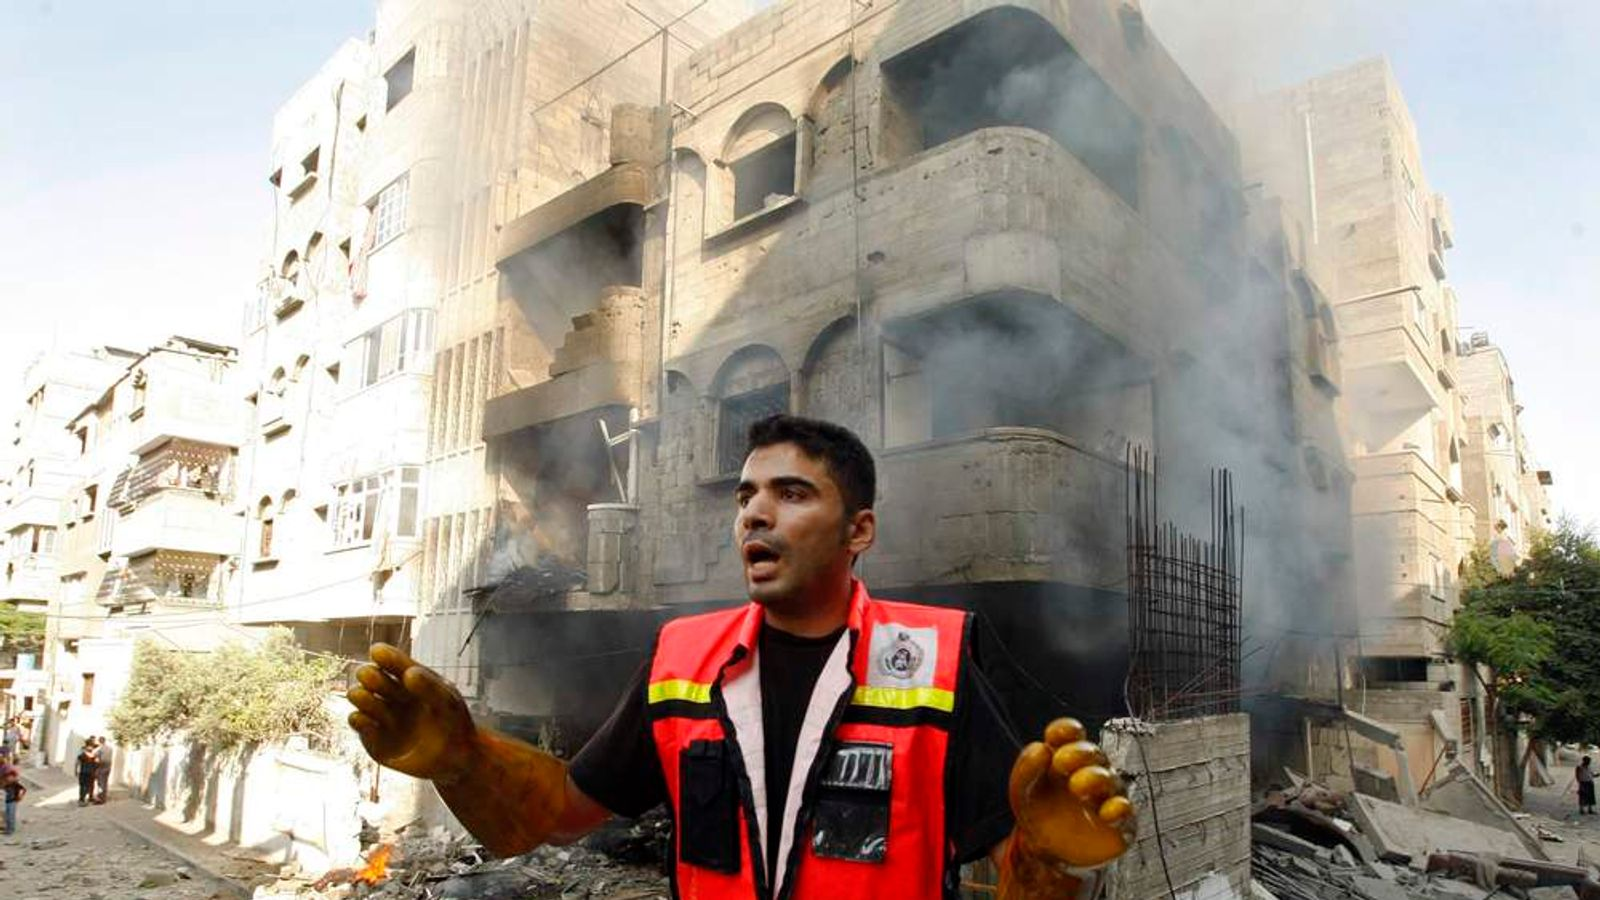 Member of the civil defence reacts after what police said was an Israeli air strike on a house, in Gaza City